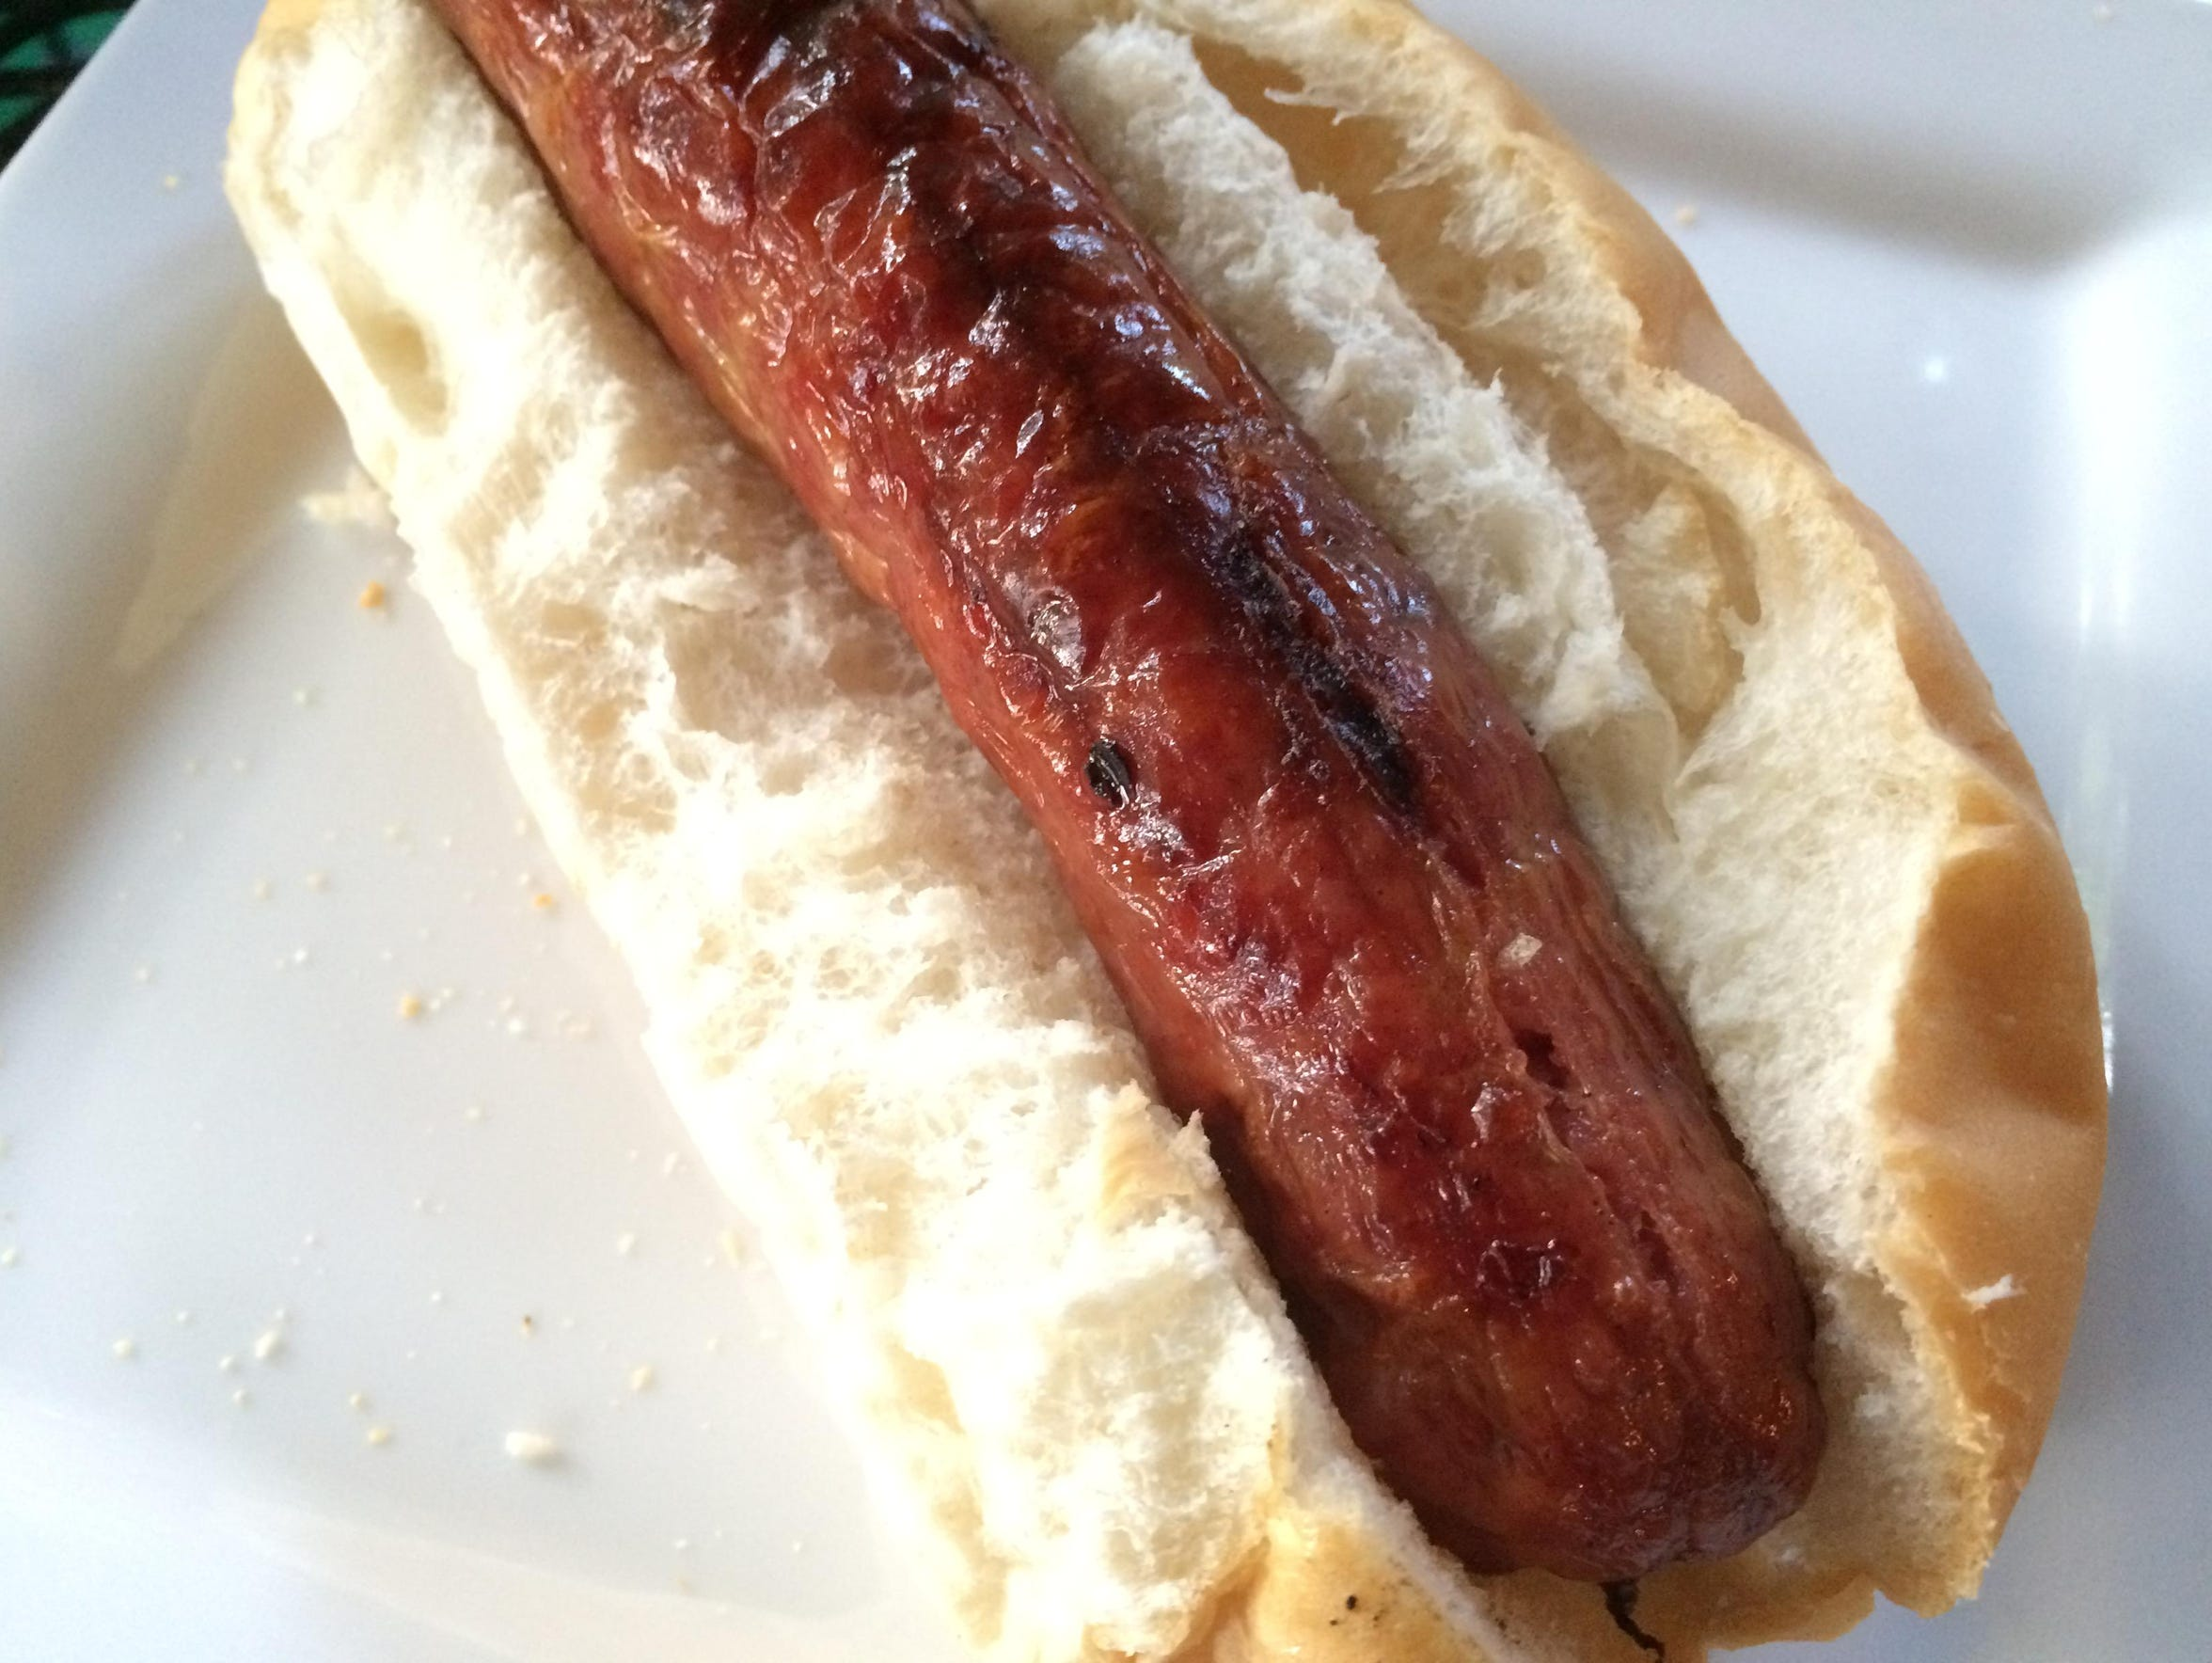 Some say the bratwurst is perfect by itself and doesn't